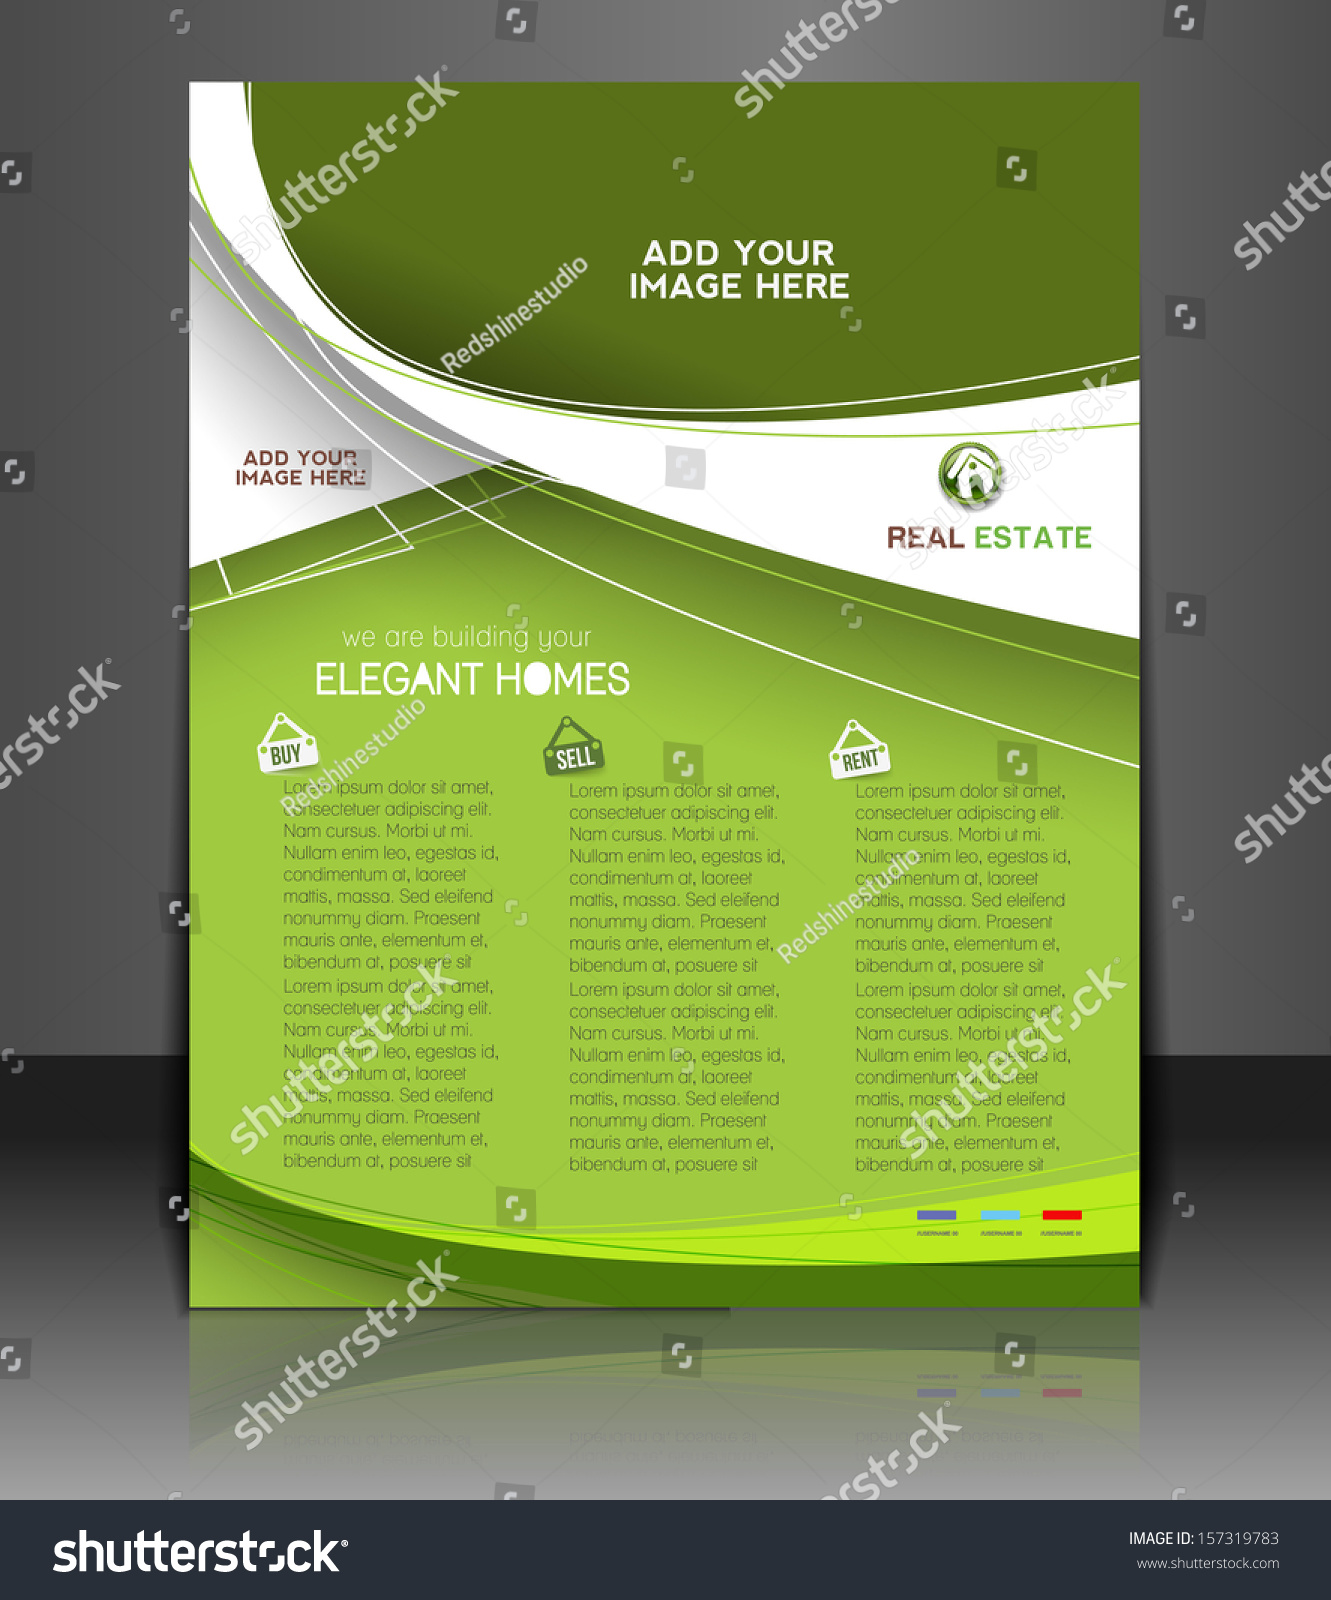 vector real estate agent flyer poster stock vector  vector real estate agent flyer poster template